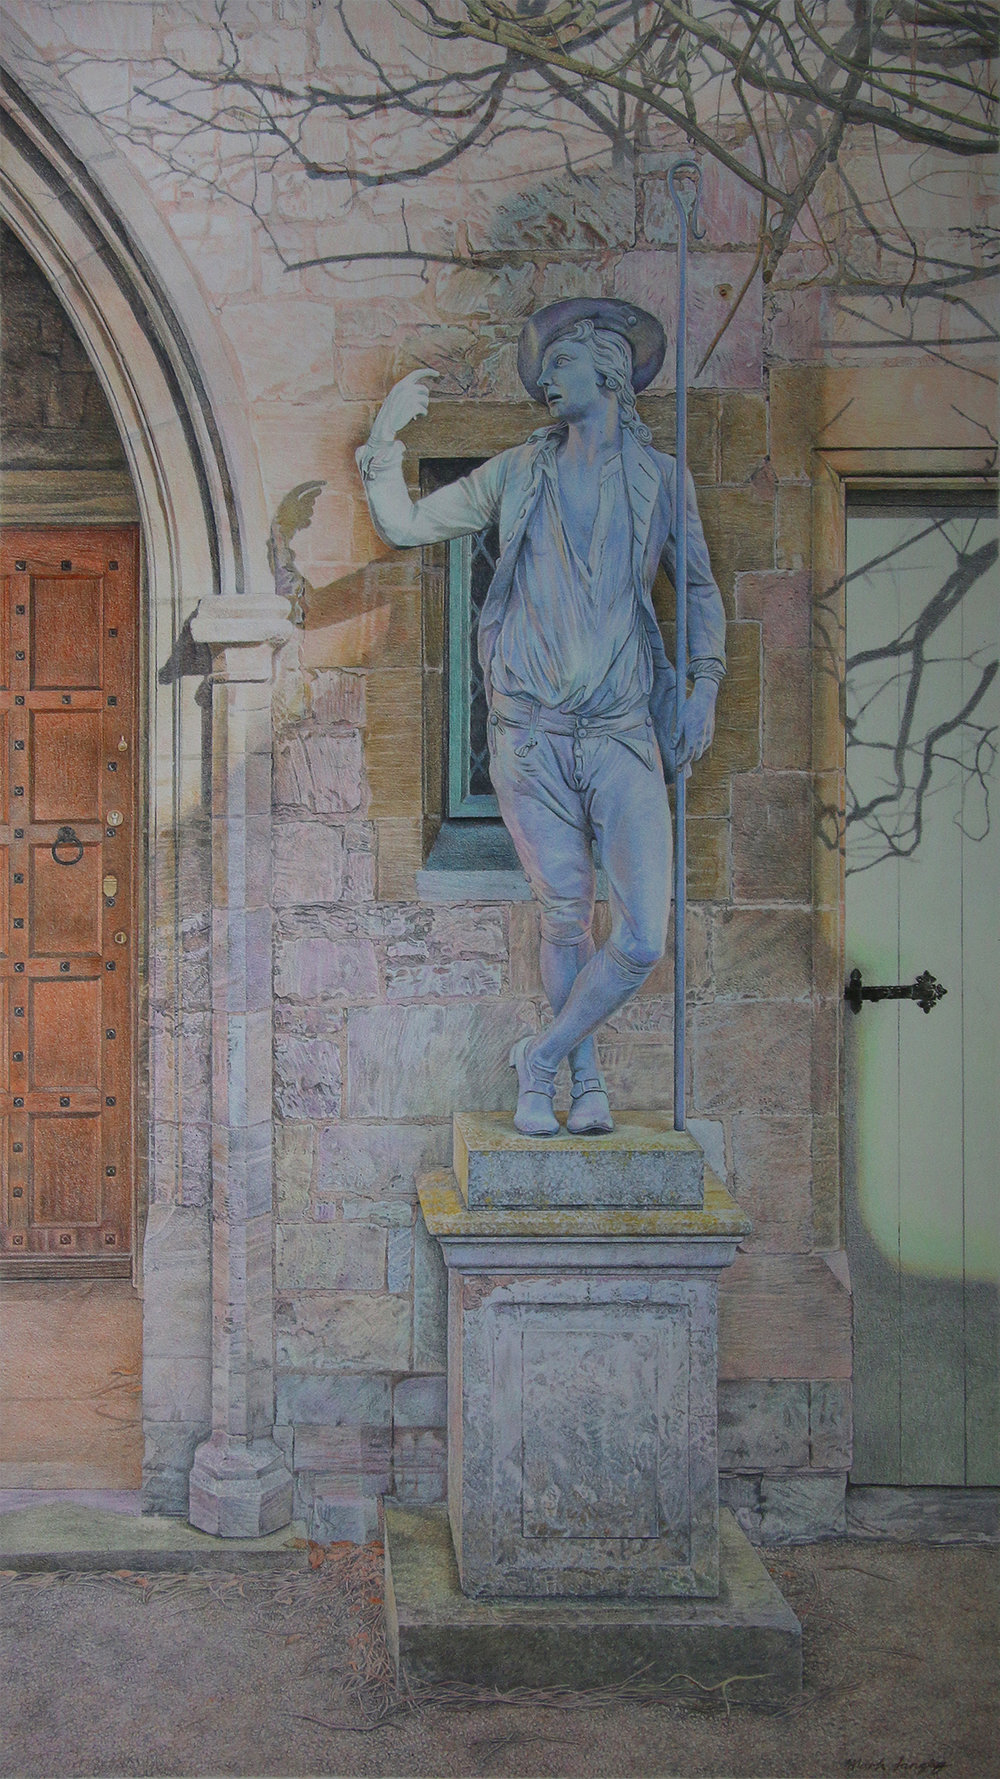 MARK LANGLEY, Shepherd's Temptation, Colour pencil, 30 x 54 cm